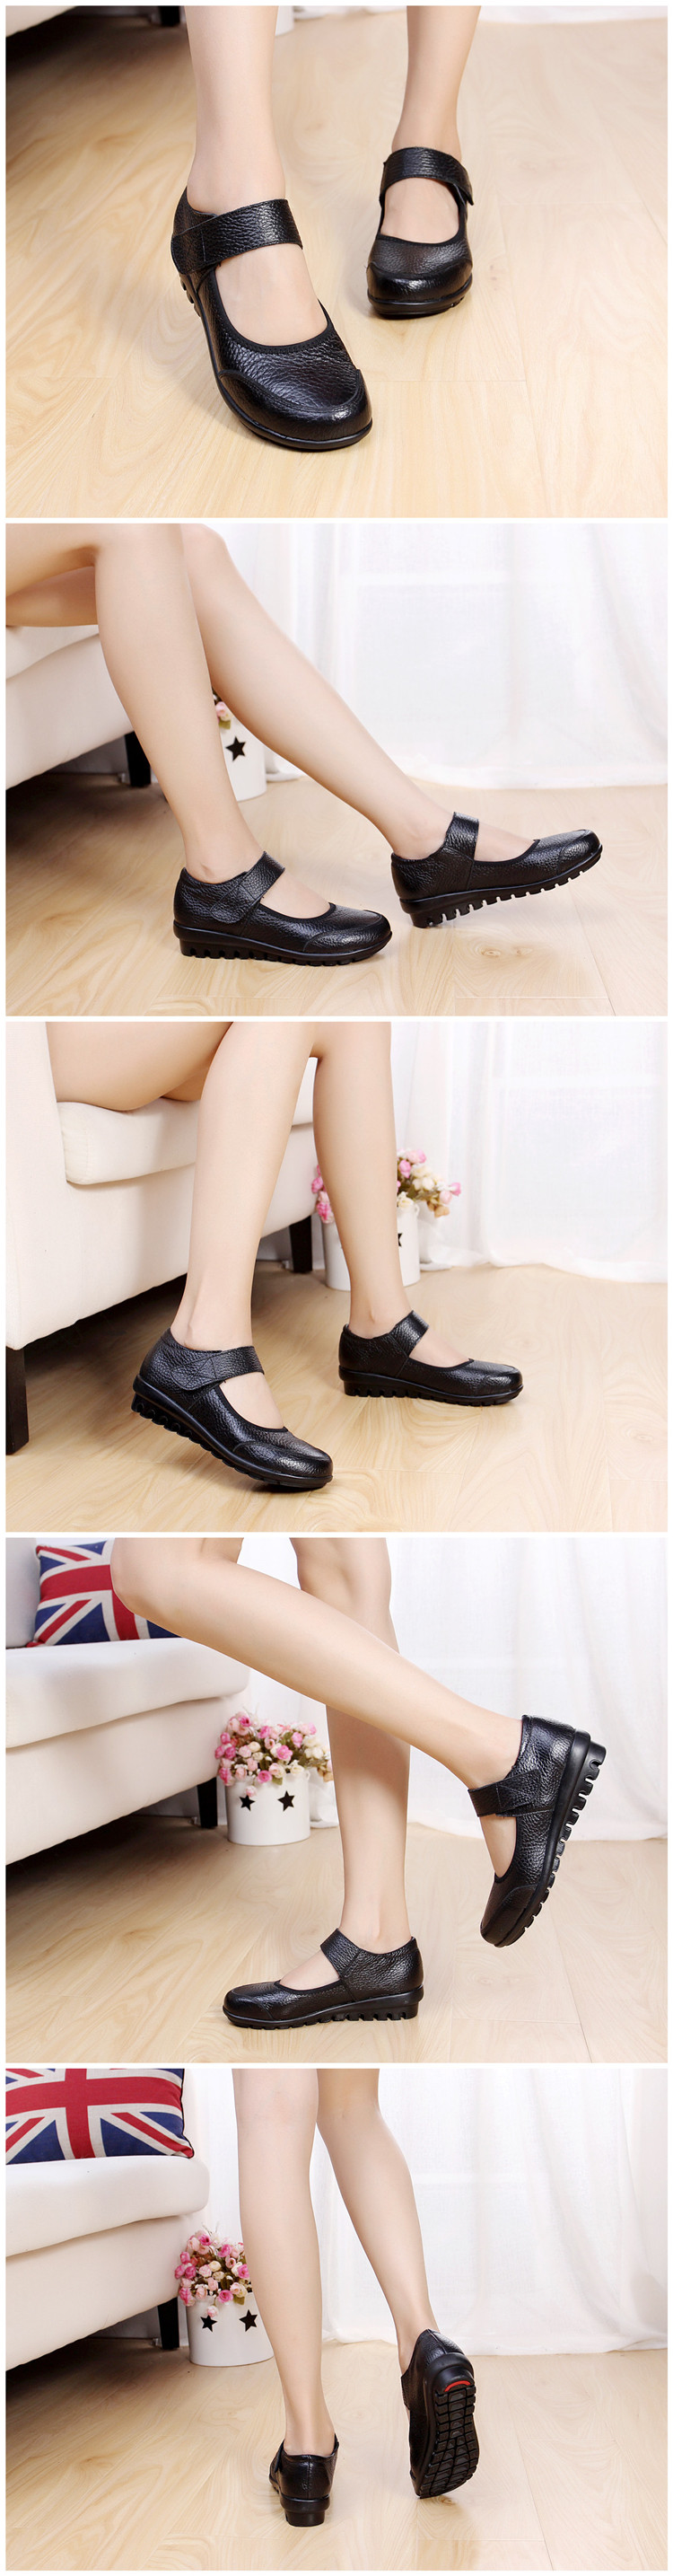 Women Genuine Leather Mother Shoes Moccasins Women's Soft Leisure Flats Ladies Driving Shoes Flat Loafers free shipping